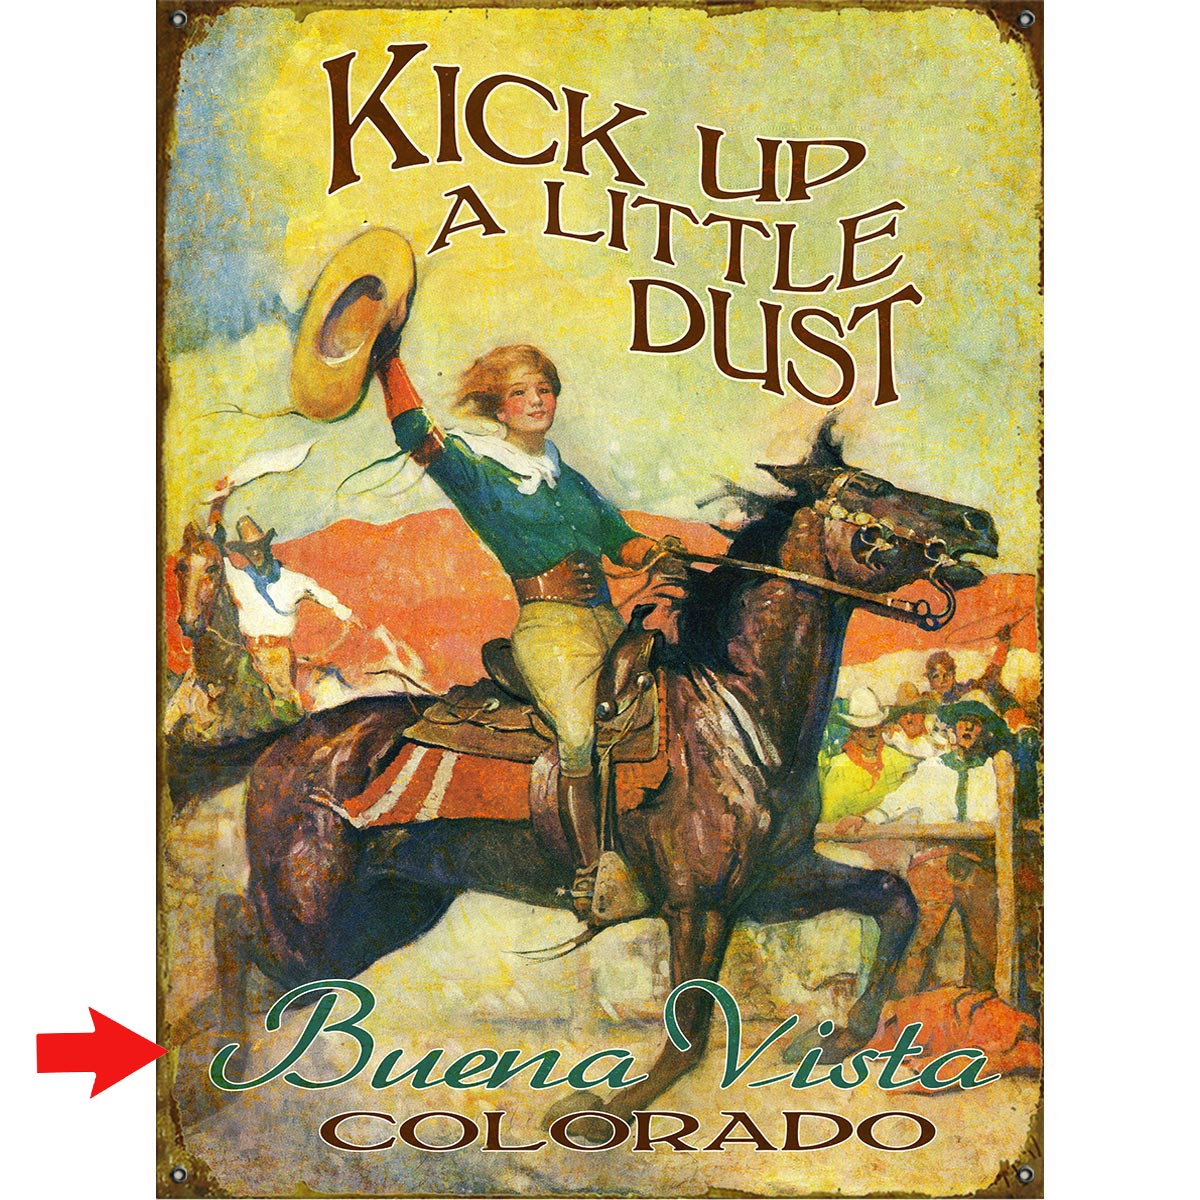 Kick Up a Little Dust Personalized Sign - 17 x 23